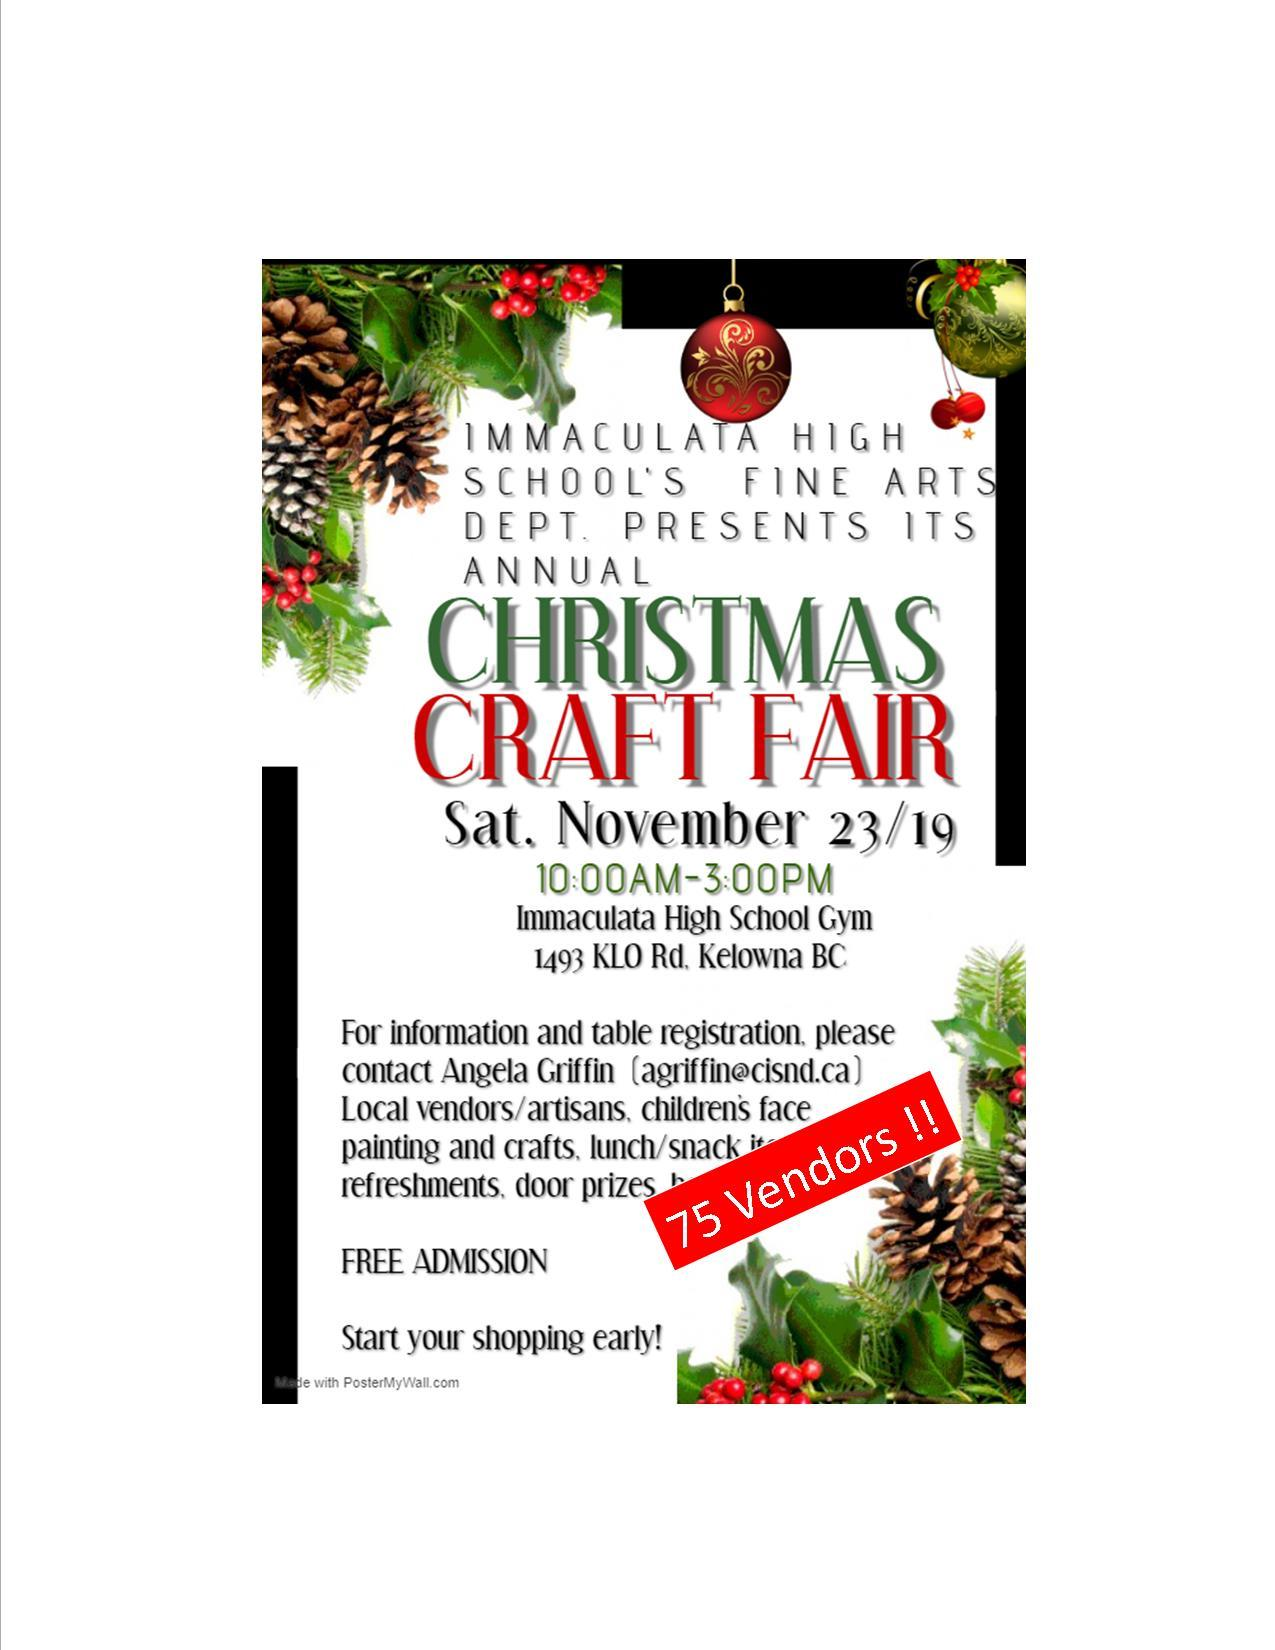 Final Countdown to Christmas Craft Fair!